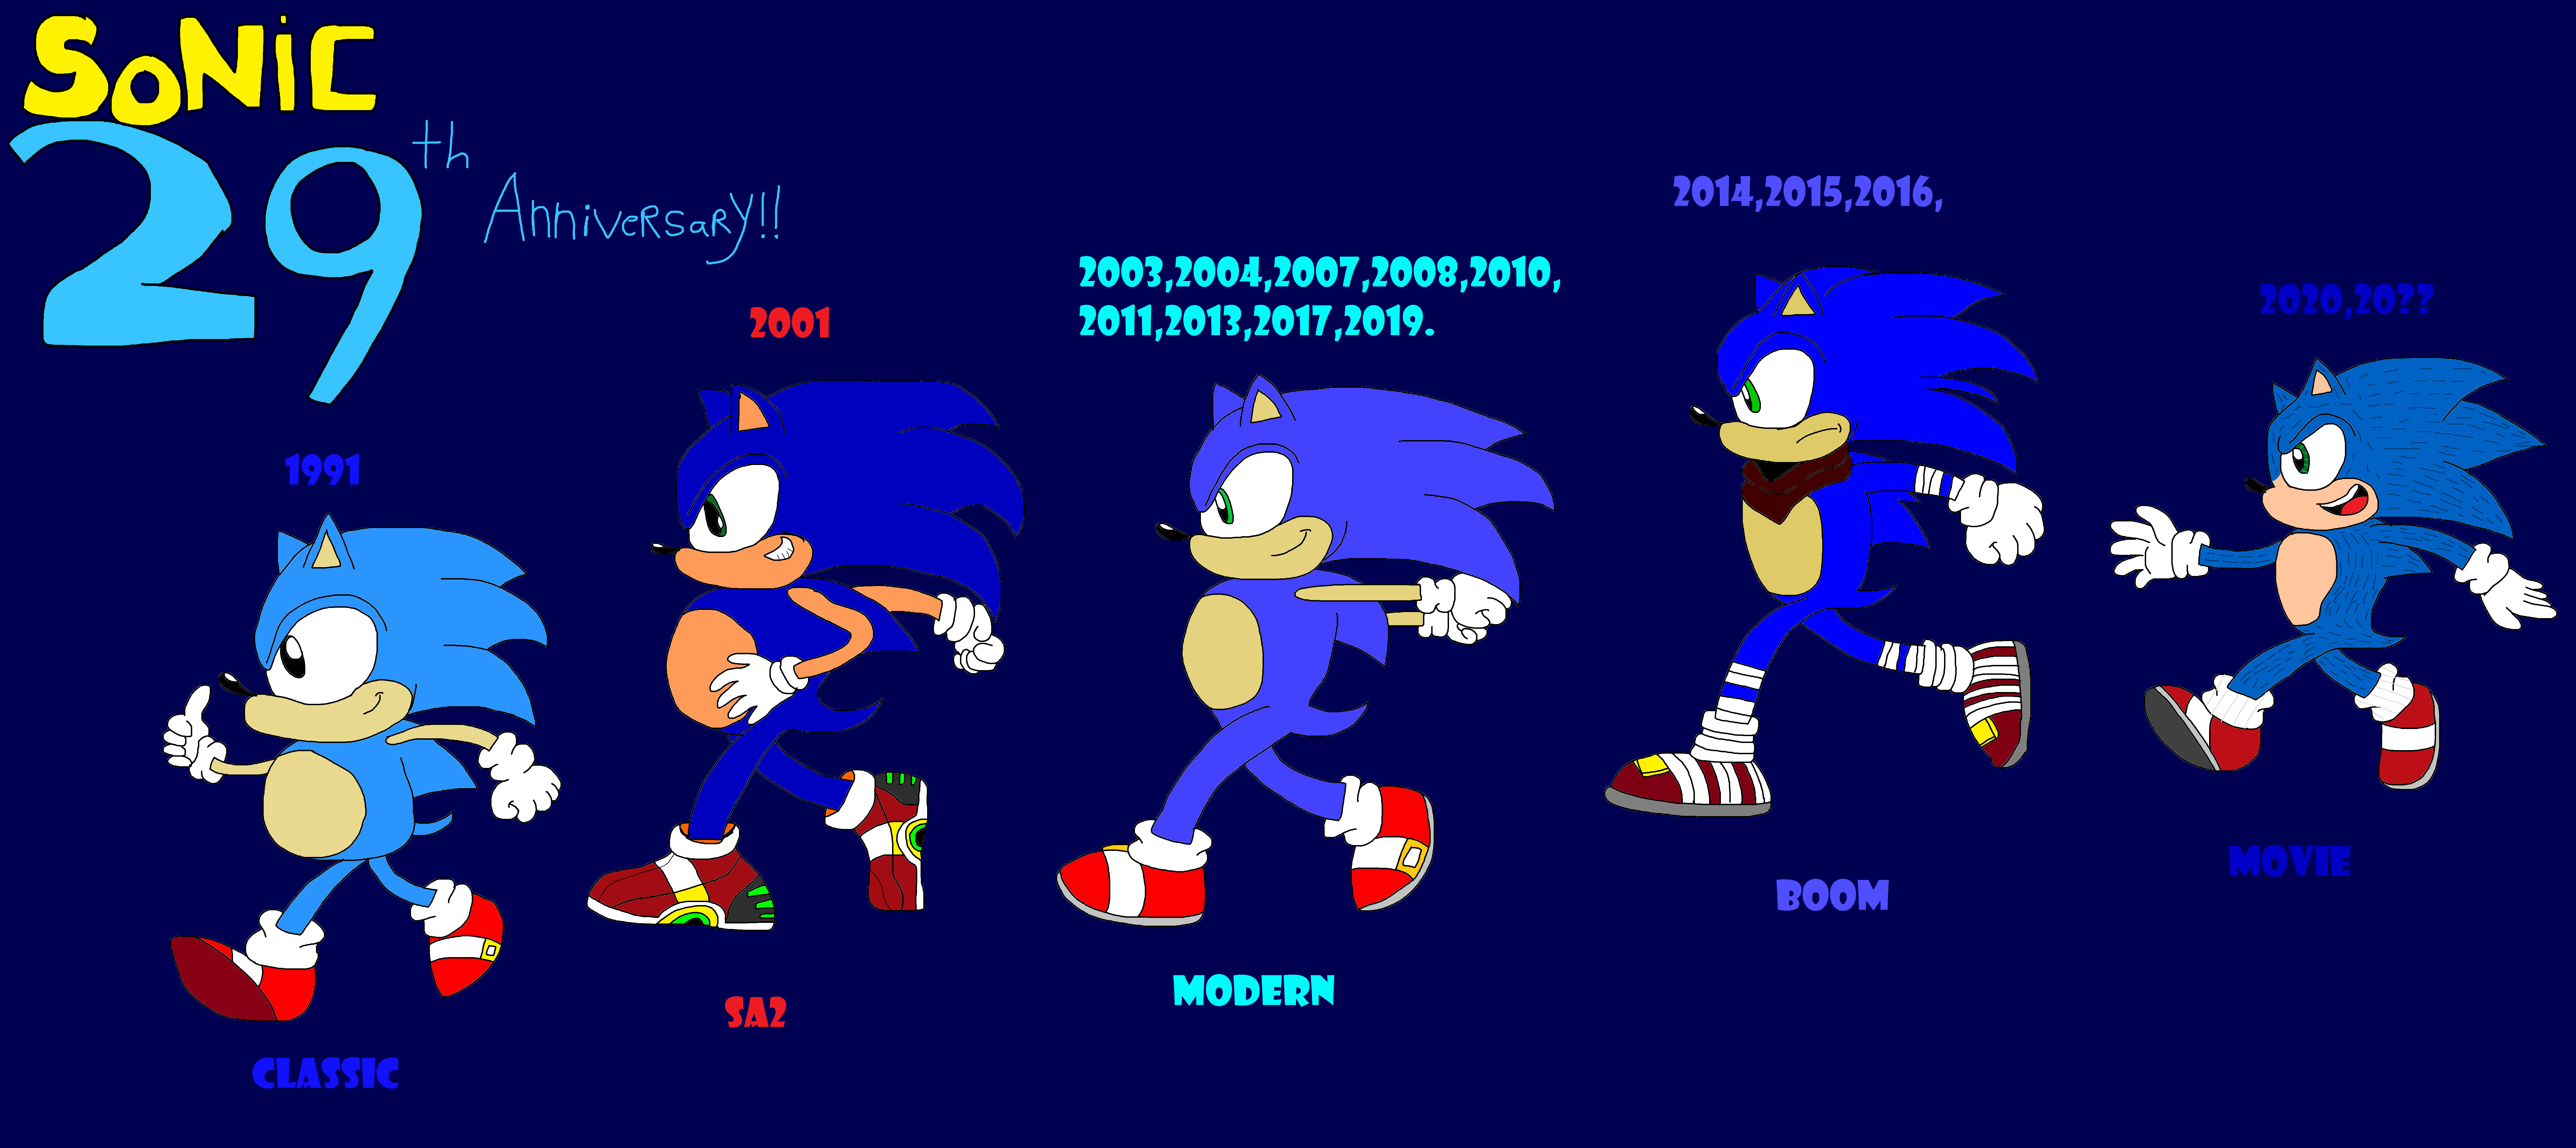 Sonic The Hedgehog 29th Anniversary Poster 2 By